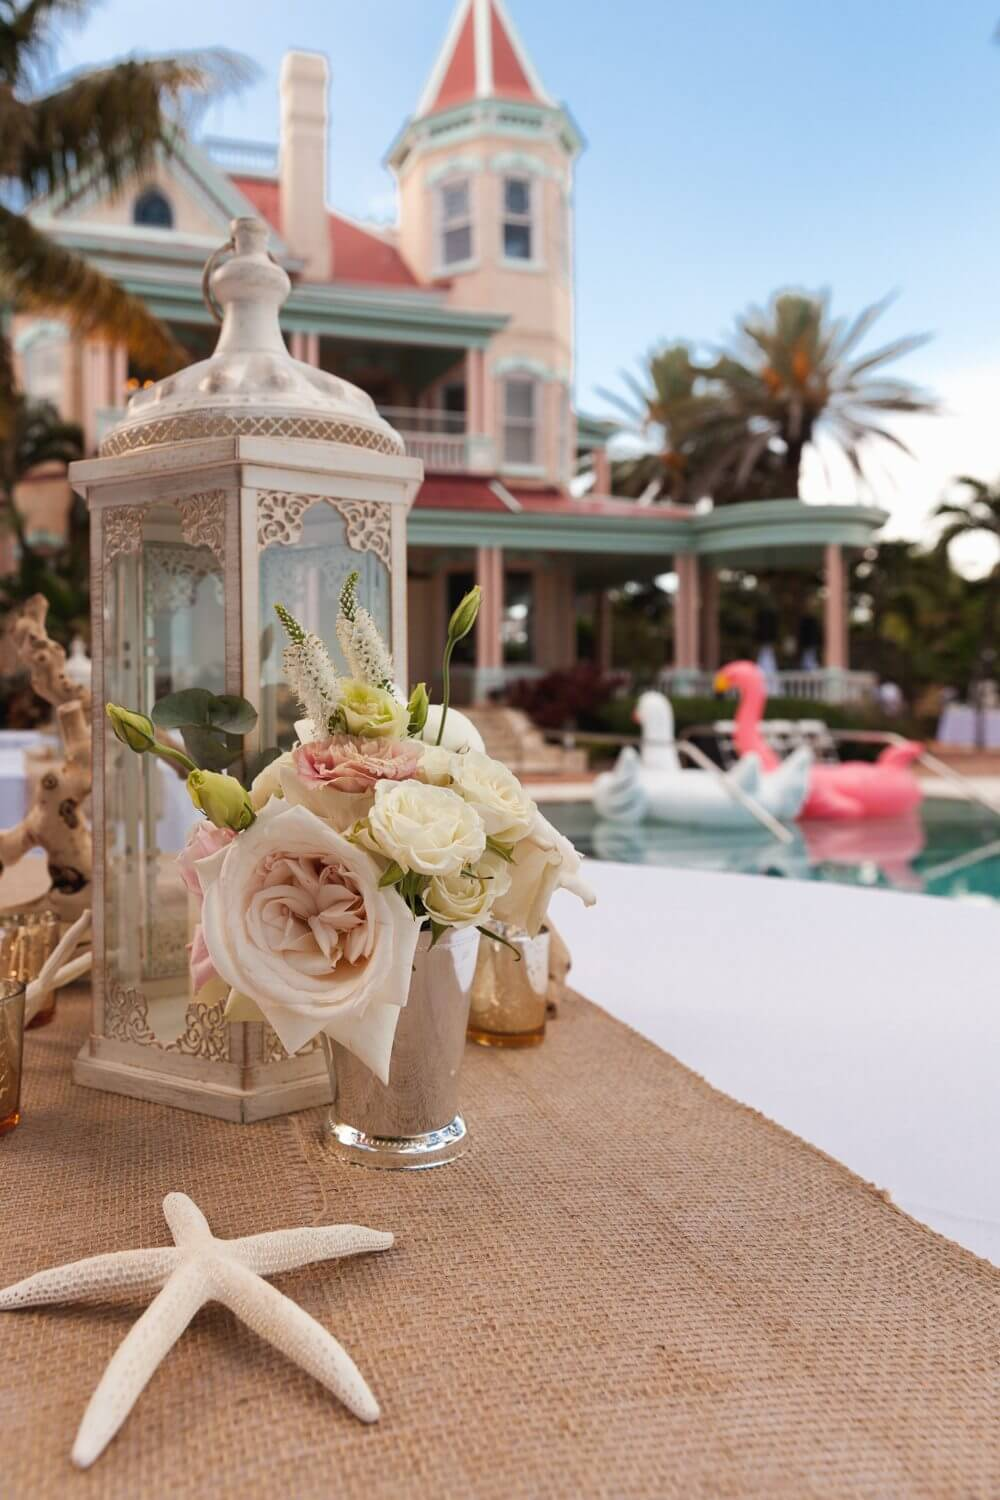 Freas Photography Southernmost House Wedding 67 - Boho Styled Key West Wedding at the Southernmost House in Key West, Florida